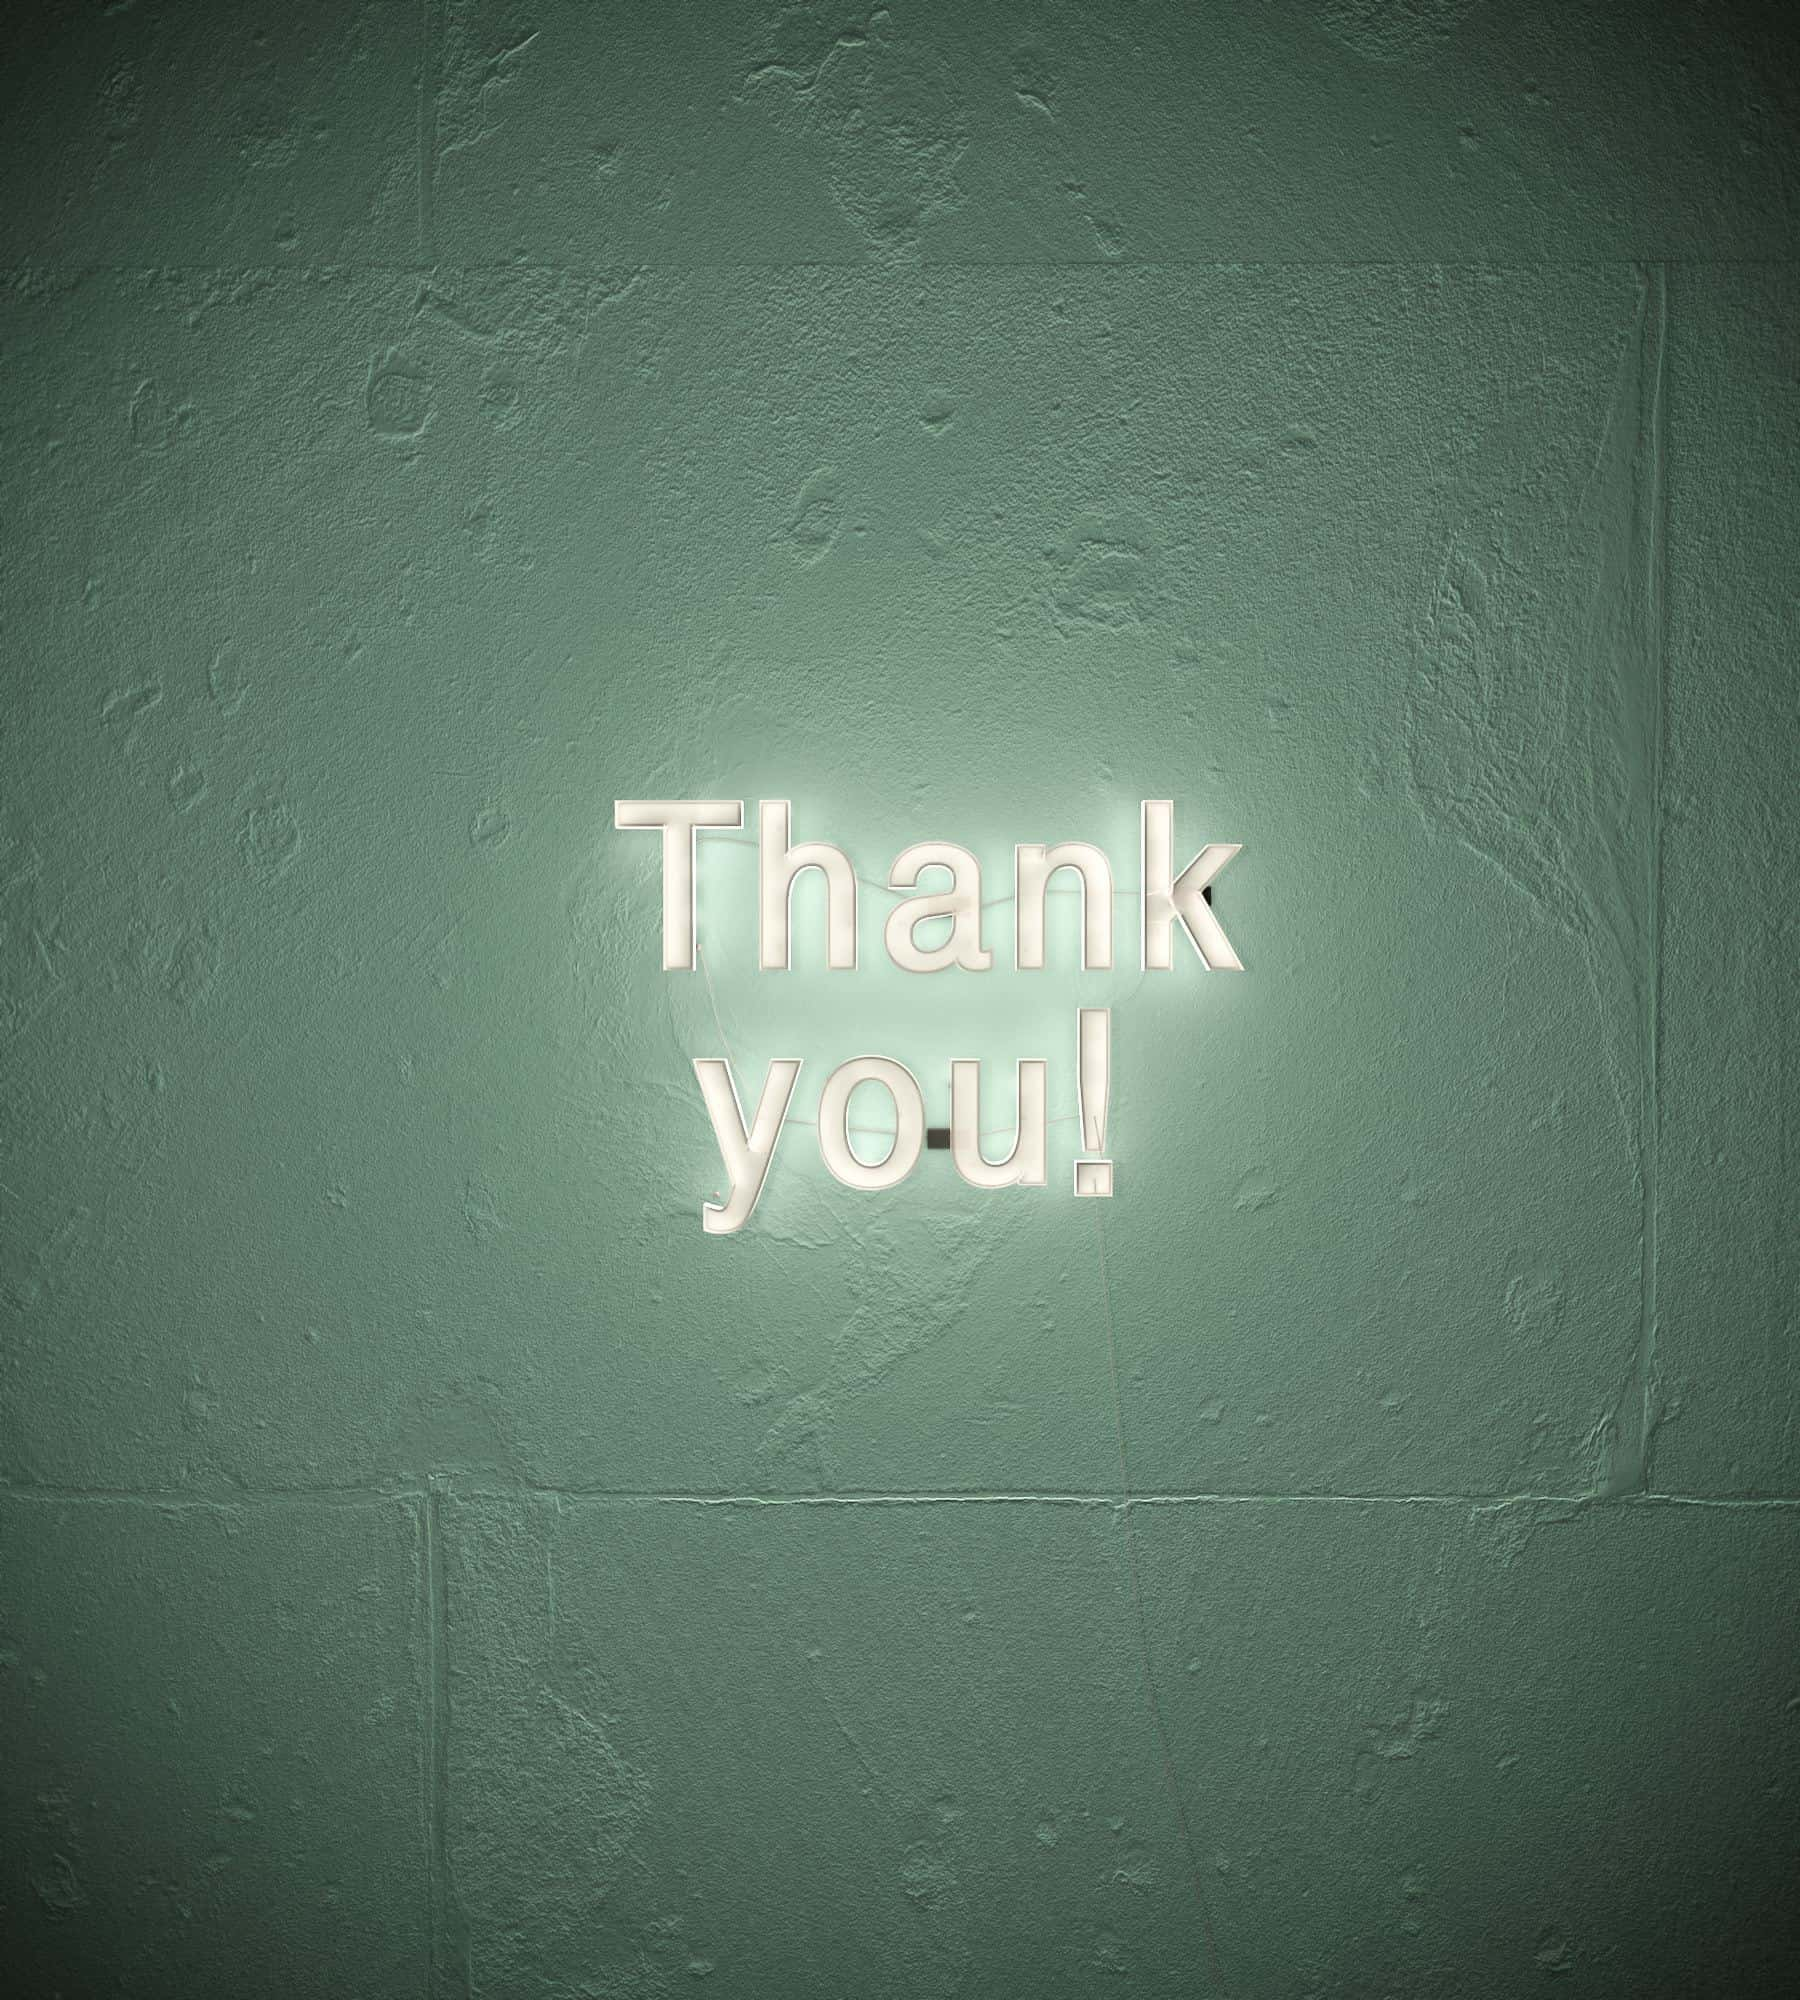 thank you sign on a wall